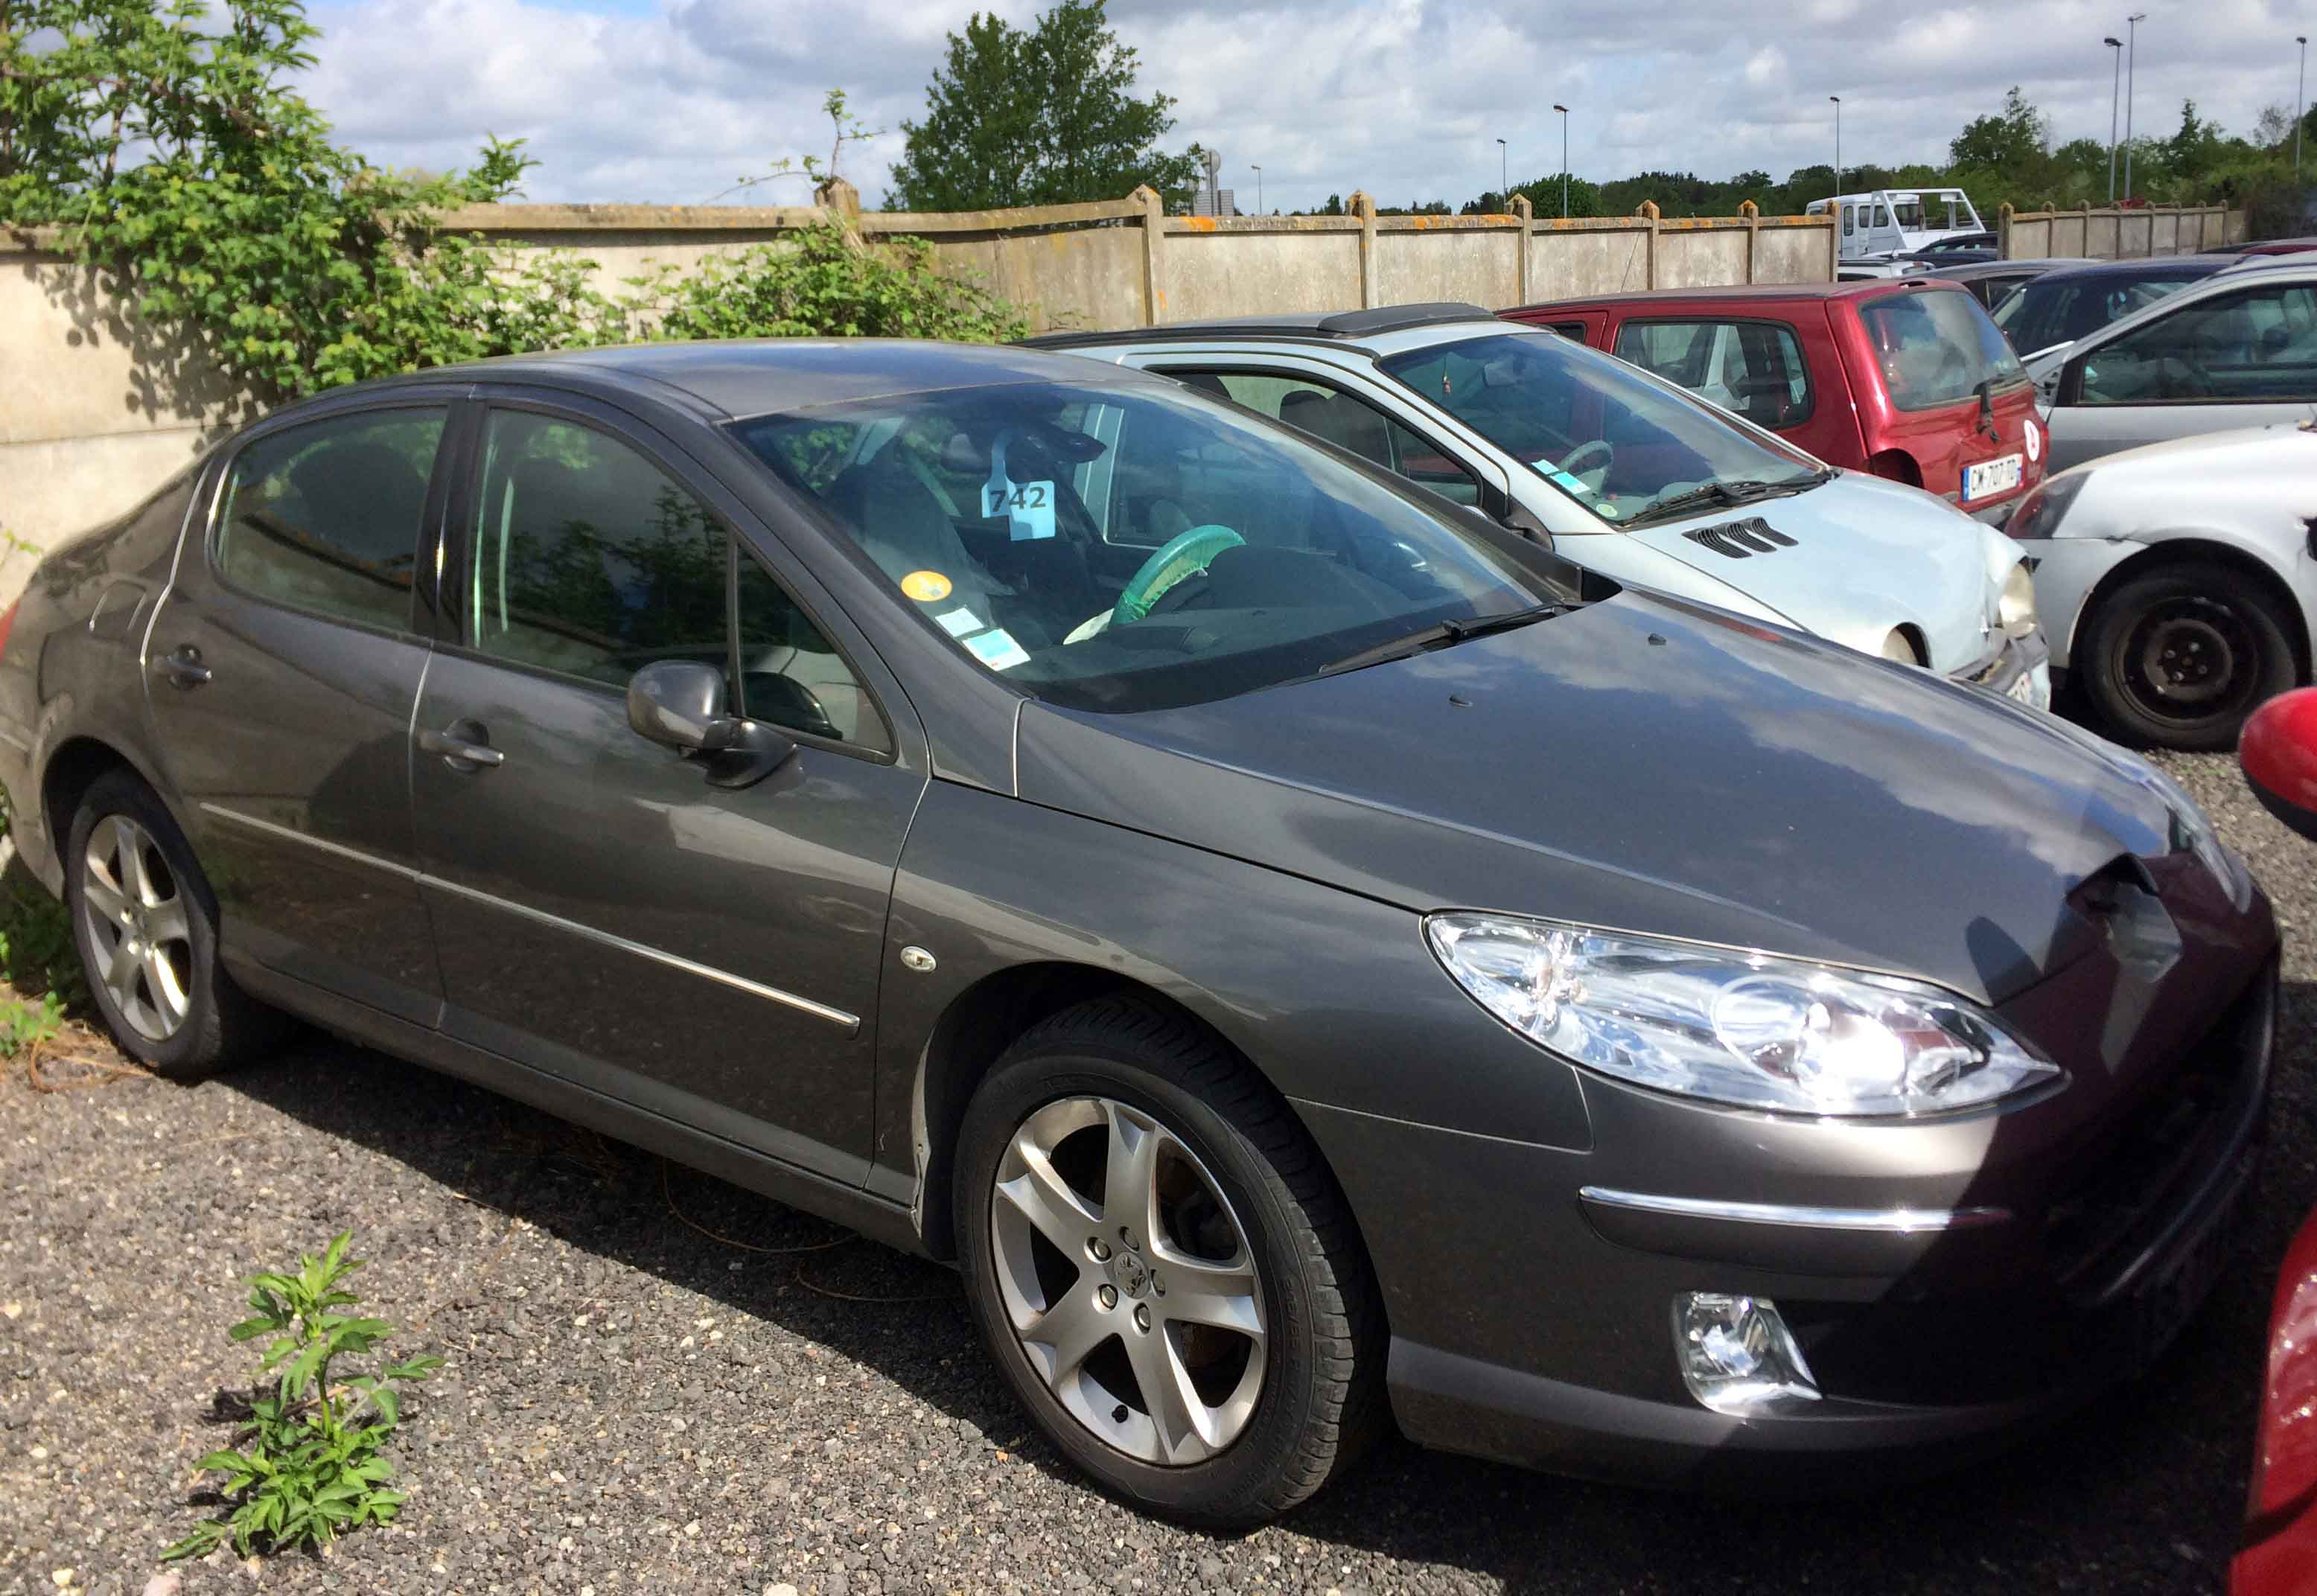 PEUGEOT 407 2.0HDI accidentée